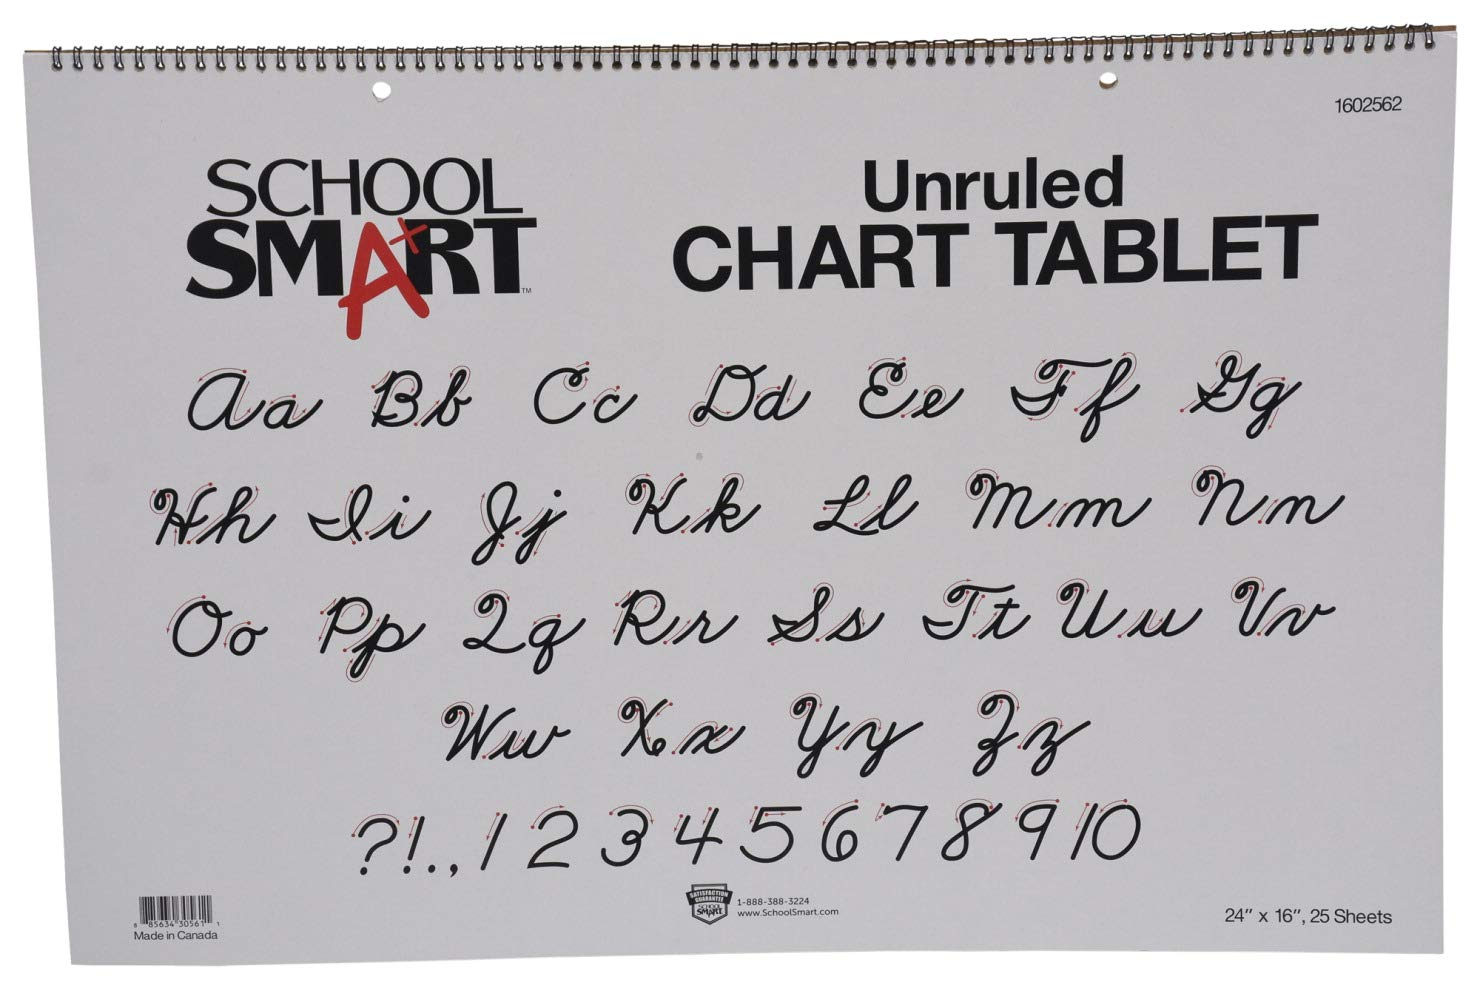 School Seasonal Wrap Introduction Smart Chart Tablet 24 x Unruled Special price for a limited time 25 16 Sheets Inches